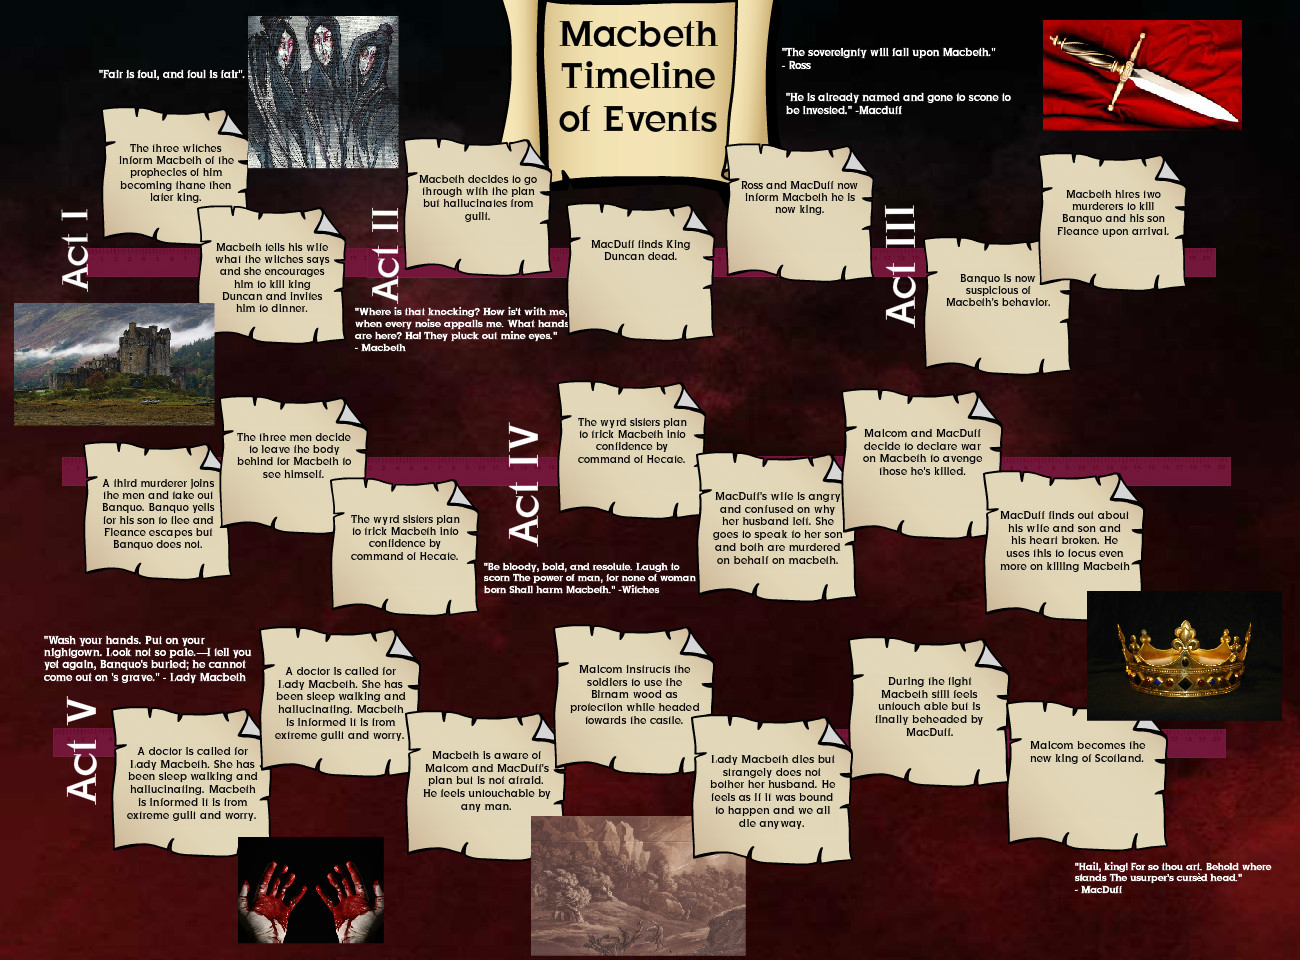 [2013] Carlyne Smith (Eng 3 Per G): Macbeth Timeline of Events